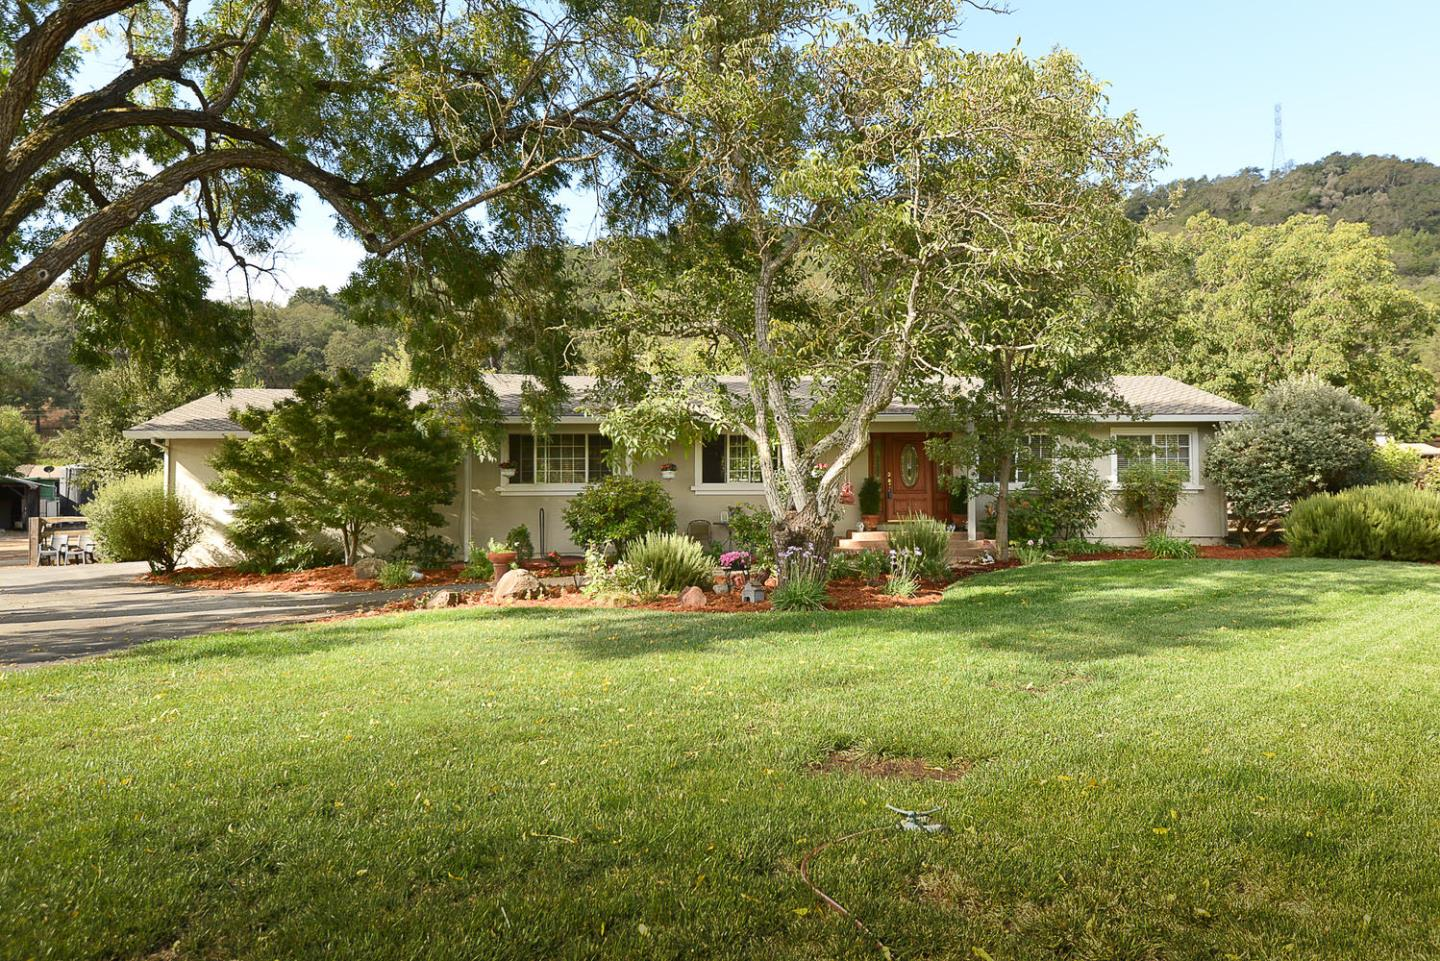 13587 Sycamore Dr, Morgan Hill, CA 95037